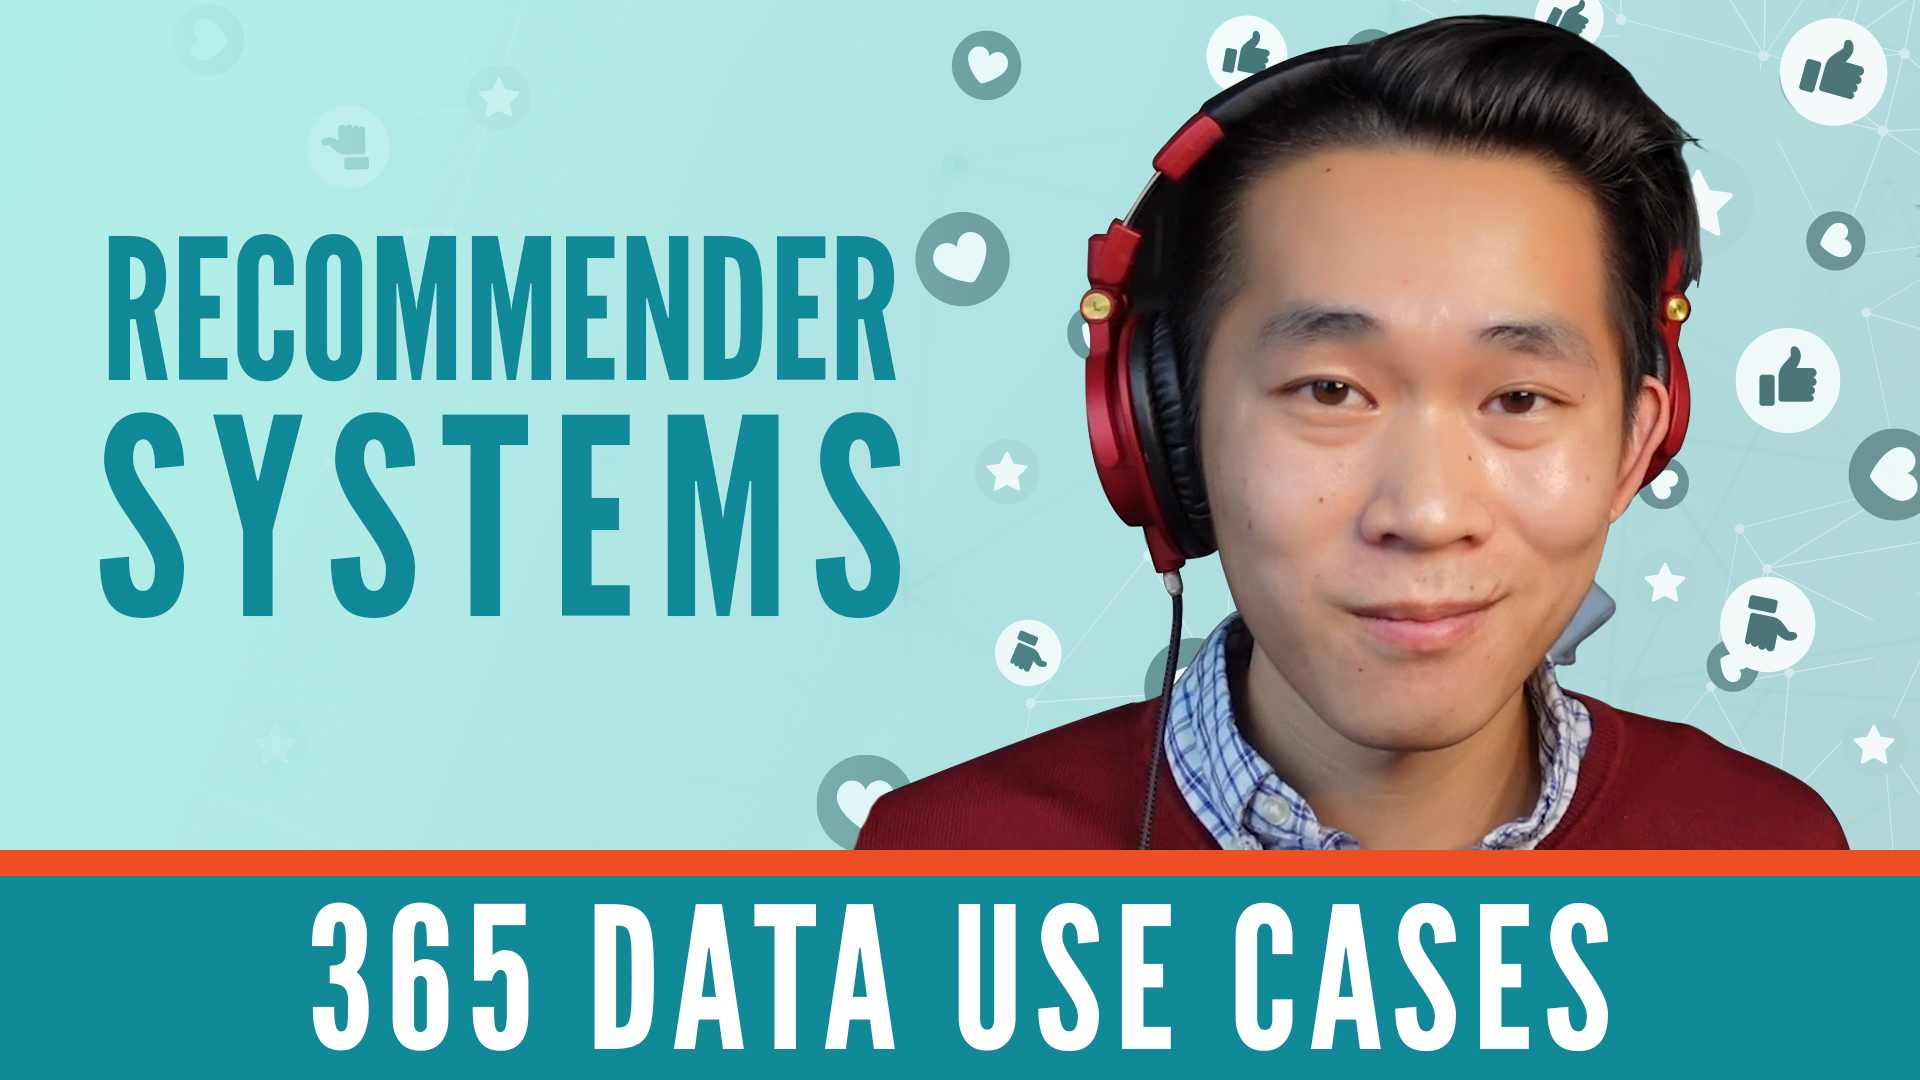 Data Use Cases: Recommender Systems with Andrew from DataLeap